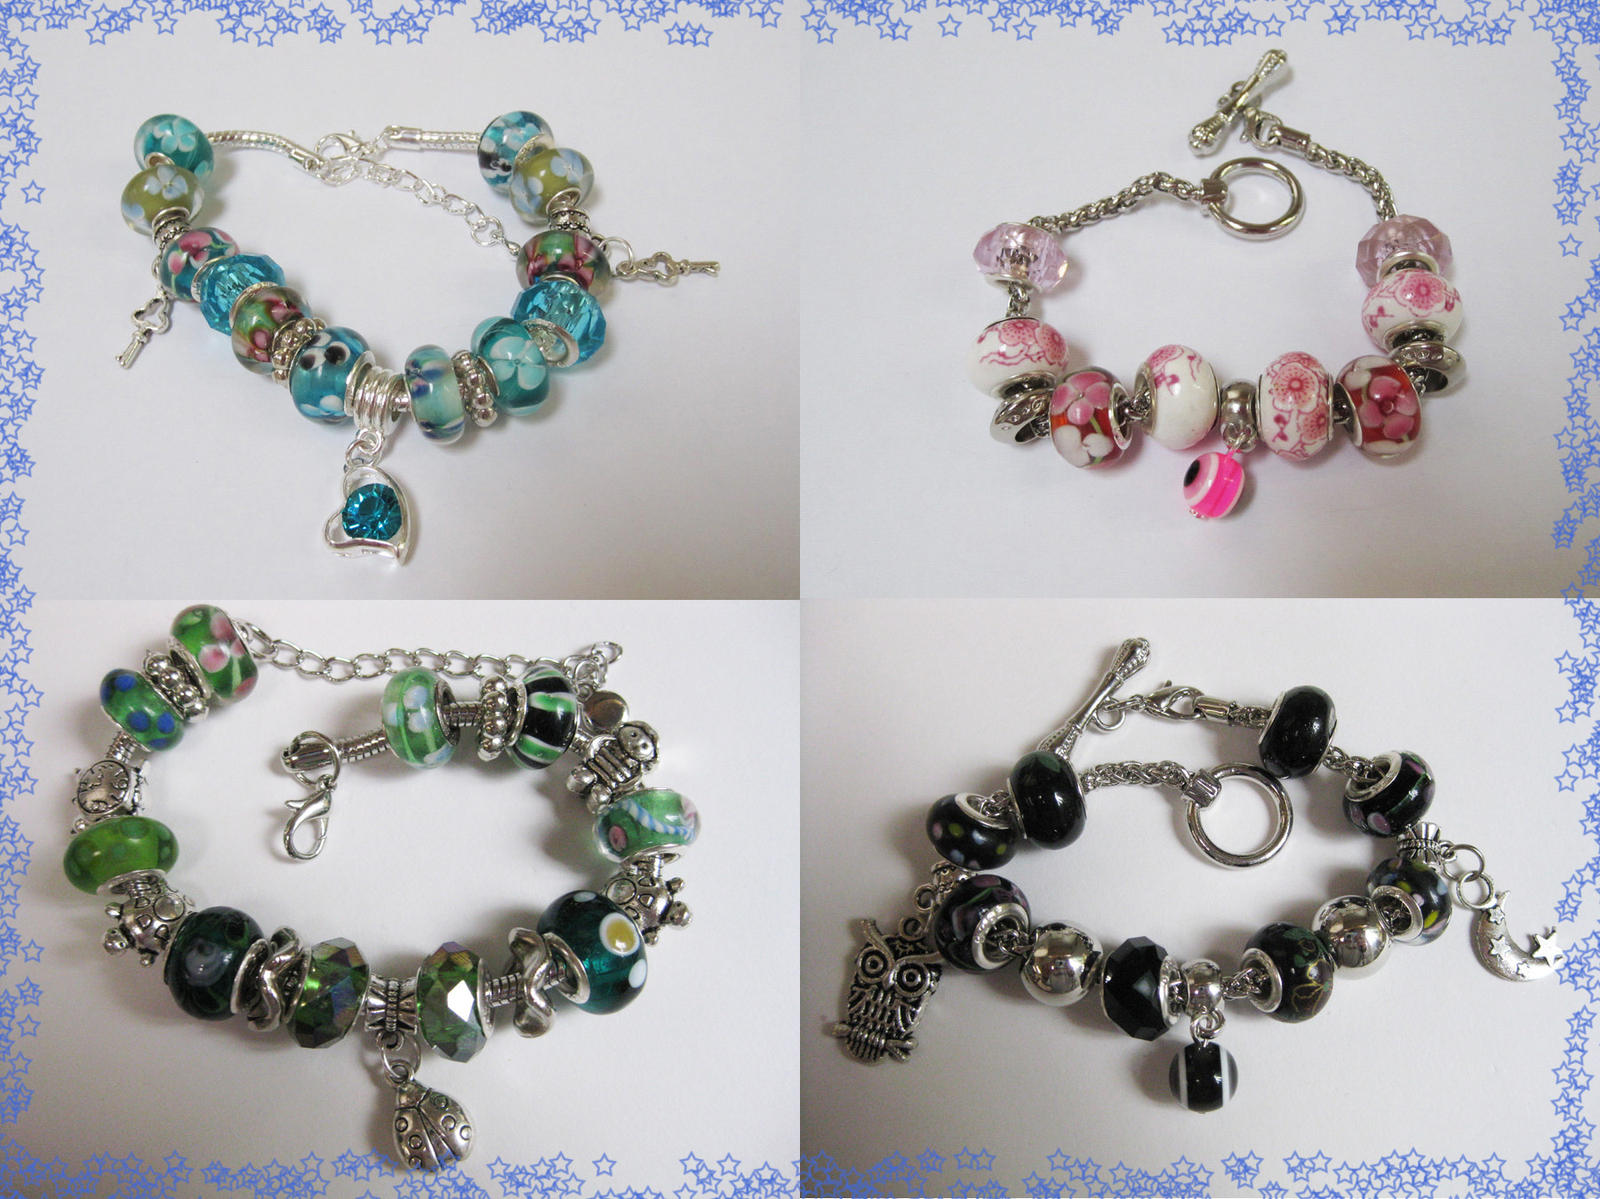 European bracelets for sale 3 by Pameloo